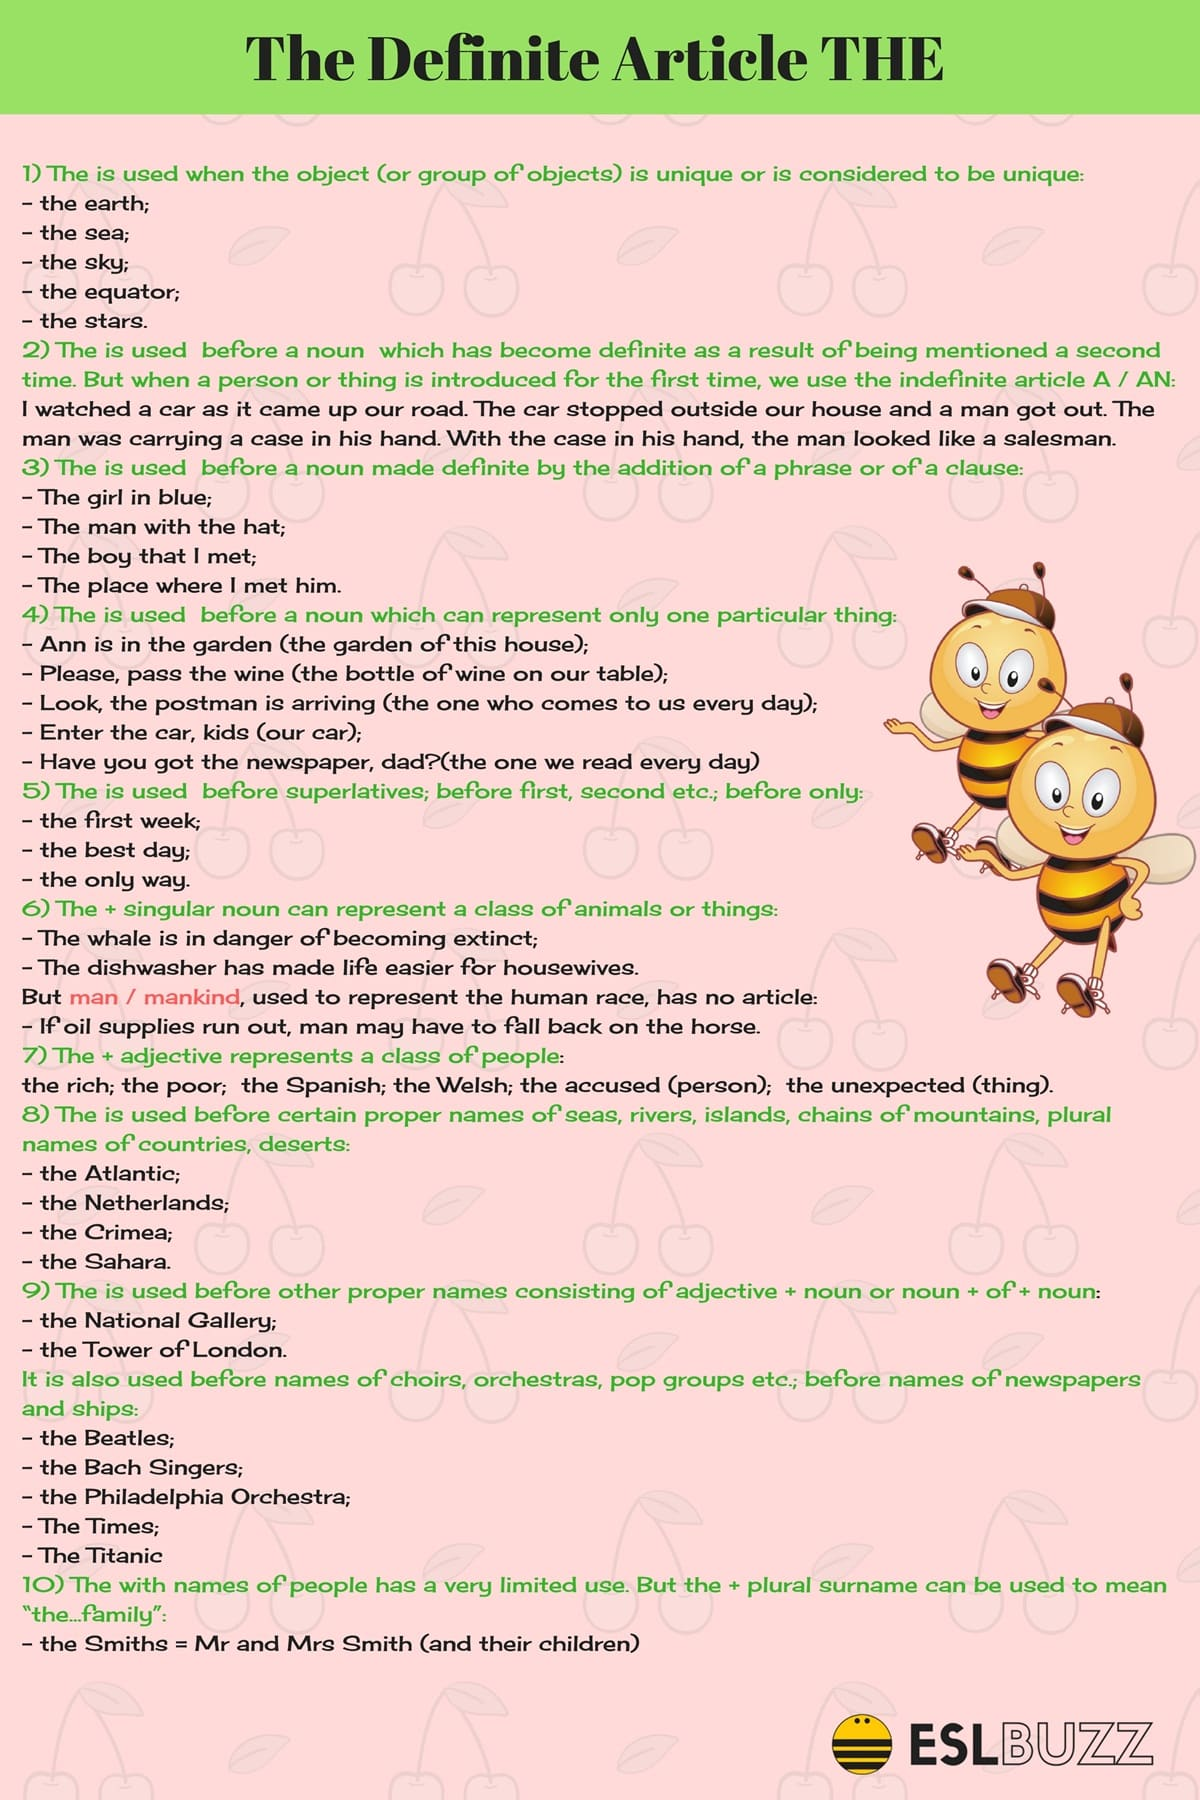 How to Use Article THE in English